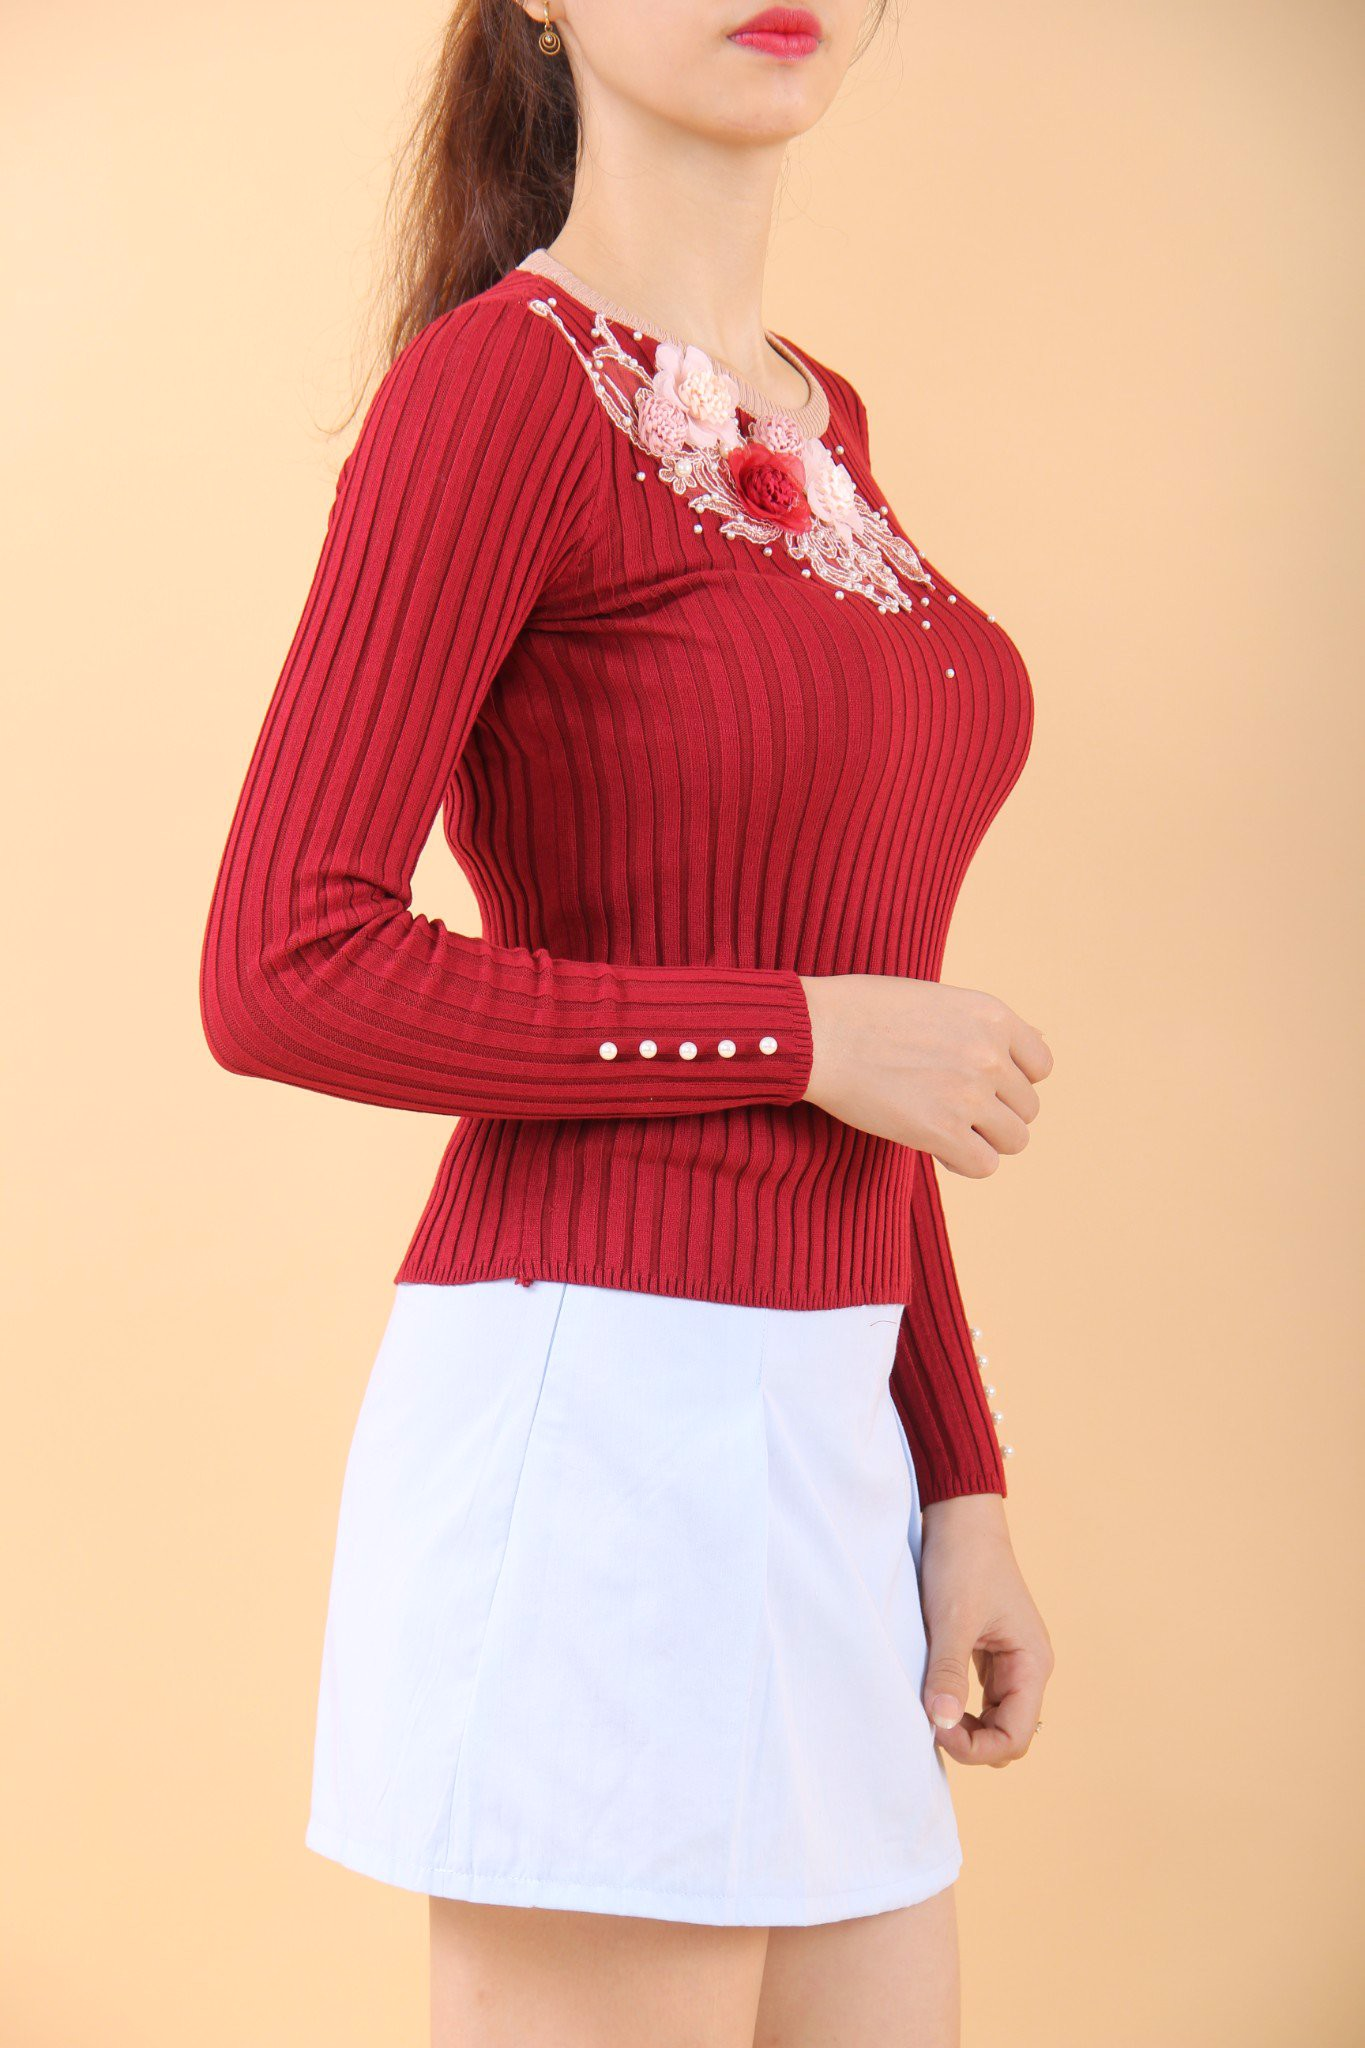 3D fabric flowers and pearls embroided on red long sleeves fitted top